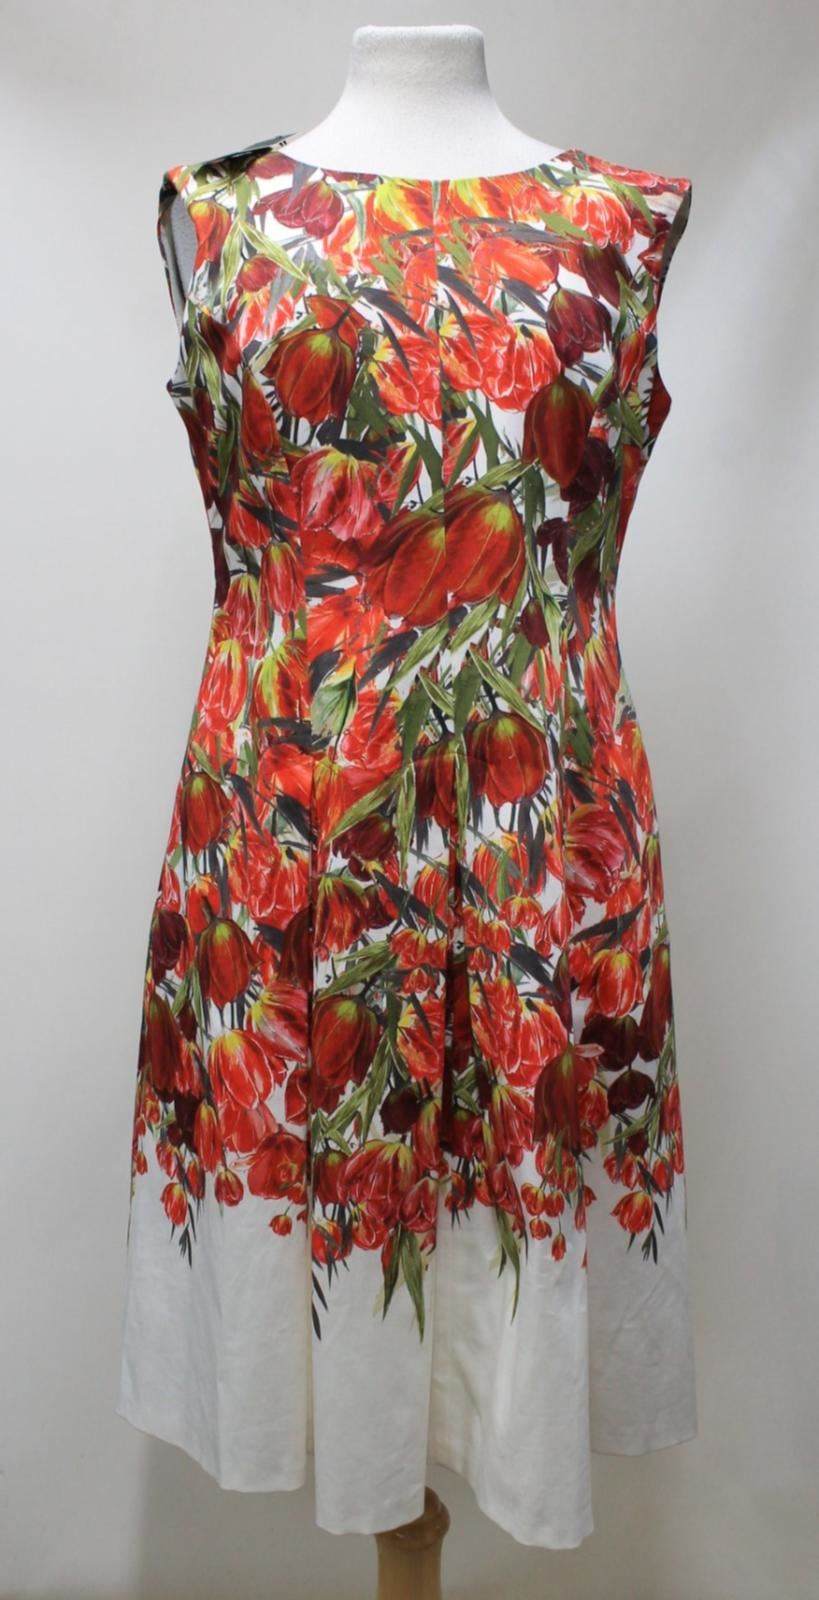 HOBBS-Nia-Ladies-Ivory-Multi-Cotton-Floral-Print-Sleeveless-Shift-Dress-UK10-NEW